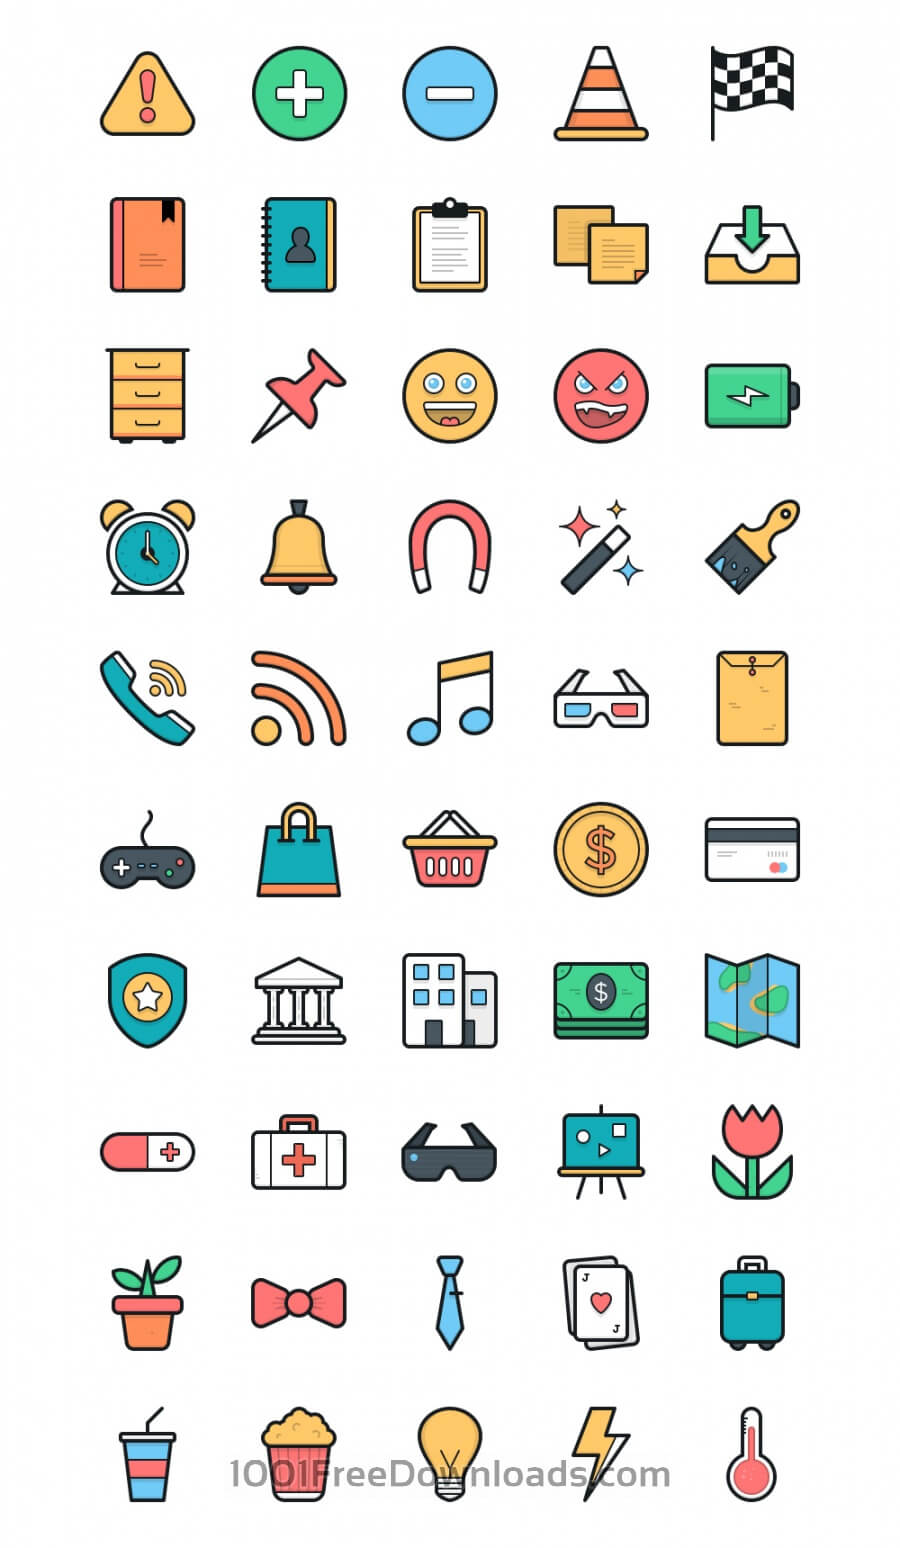 Free Vectors: Lulu Icons - Set 2 | Icons